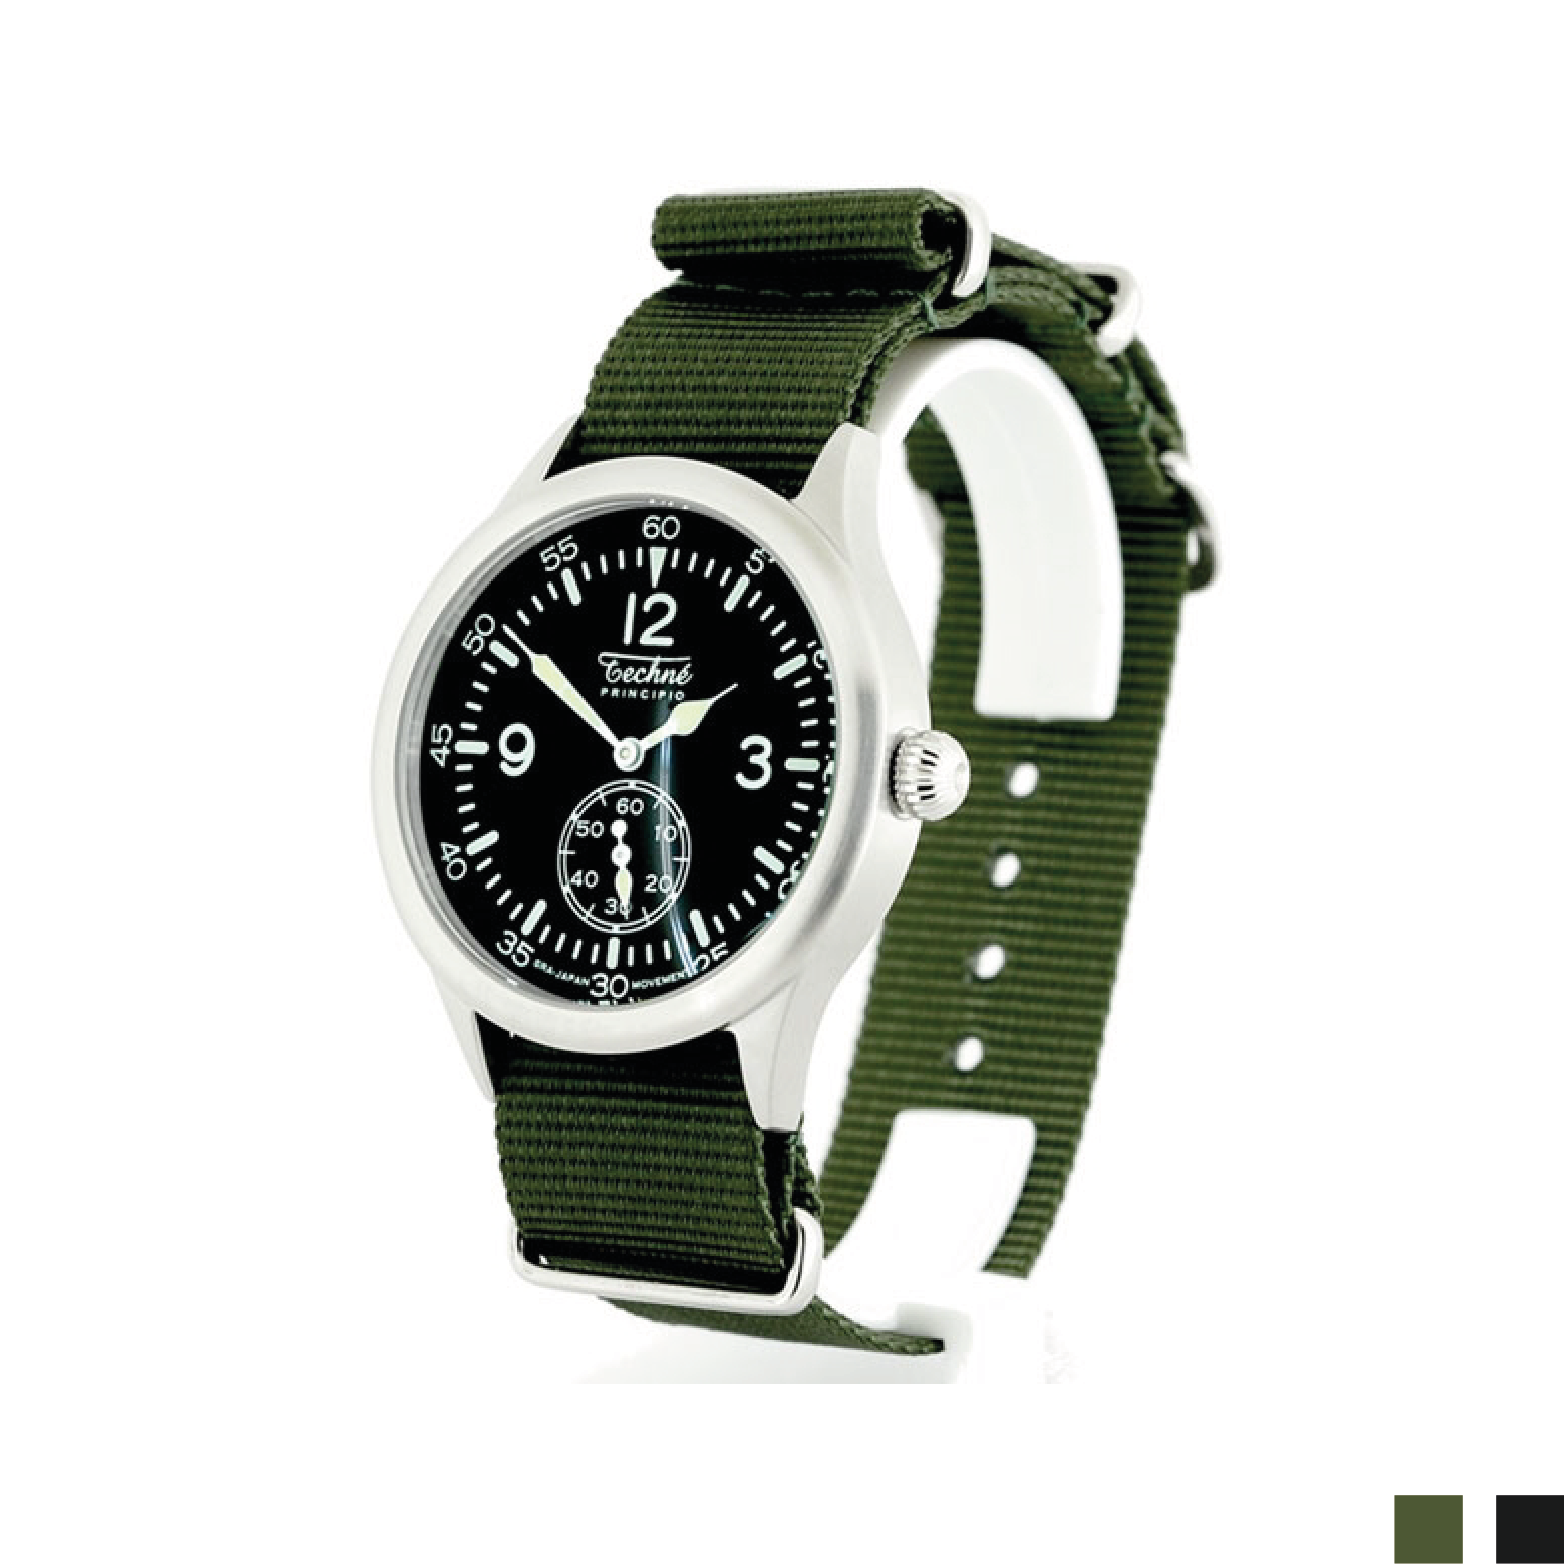 MERLIN    By  Techne Instruments     A military inspired watch with all the hallmarks to suit the outdoor lifestyle.    SHOP NOW          £95